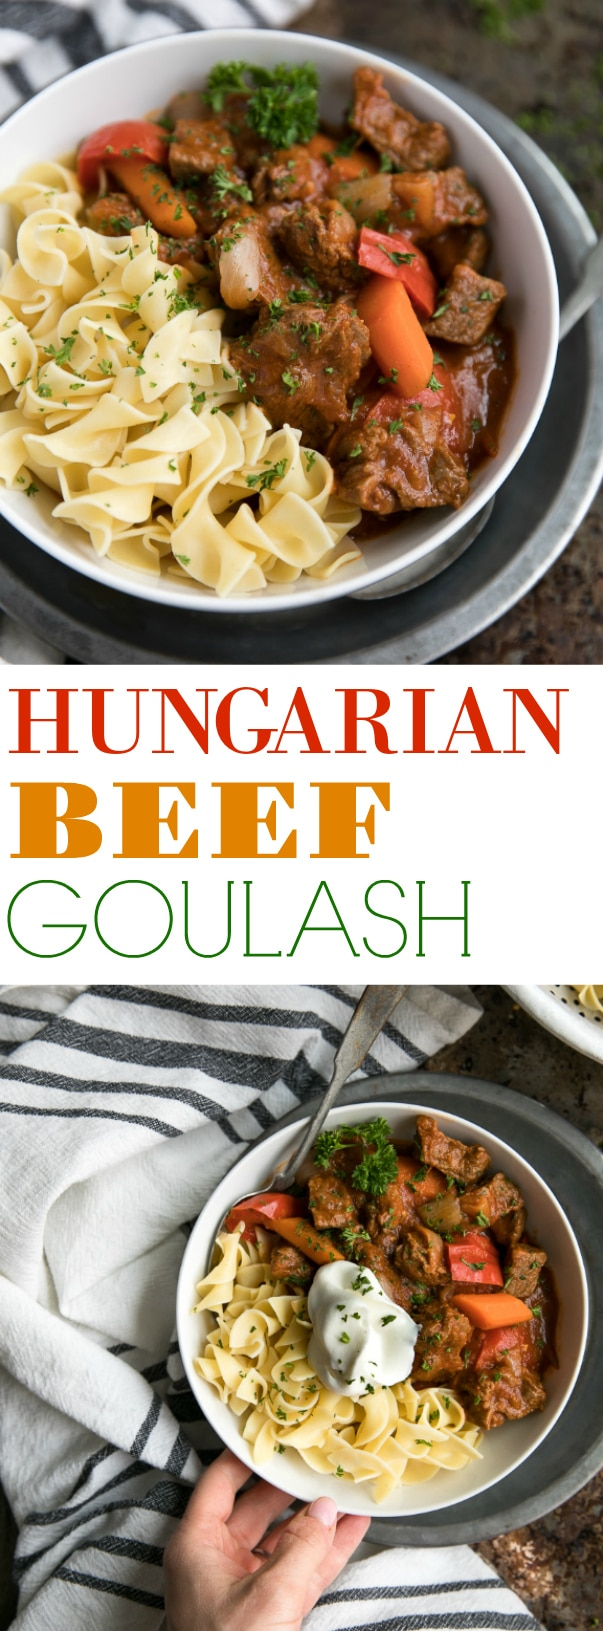 Easy Hungarian Beef Goulash via @theforkedspoon #beefgoulash #hungarianbeefgoulash #beefstew #easyrecipe #comfortfood #familyrecipe #recipe #stewrecipe | For this recipe and more visit, https://theforkedspoon.com/hungarian-beef-goulash/